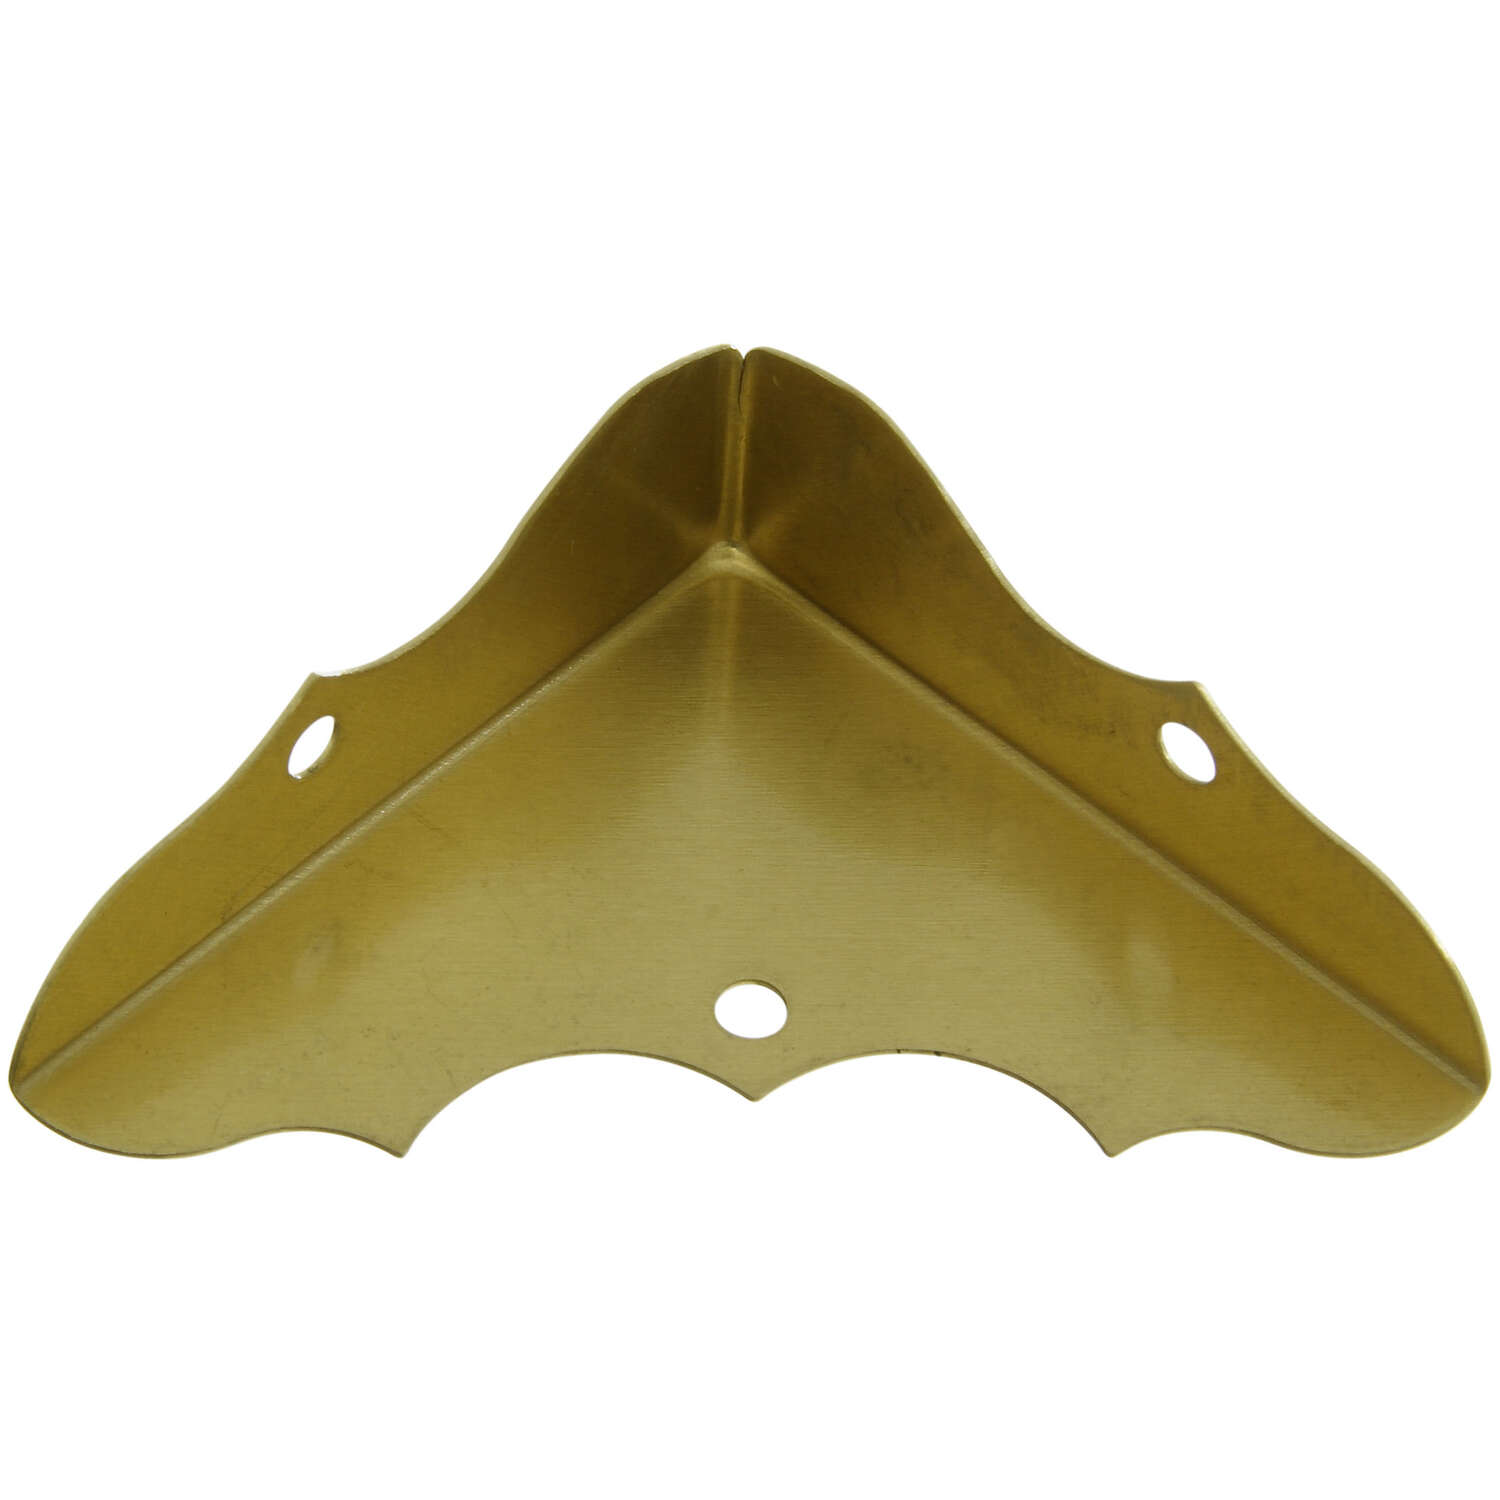 National Hardware  0.63 in. H x 1.75 in. W x 0.02 in. D Solid Brass  Outside  Decorative Corner Brac